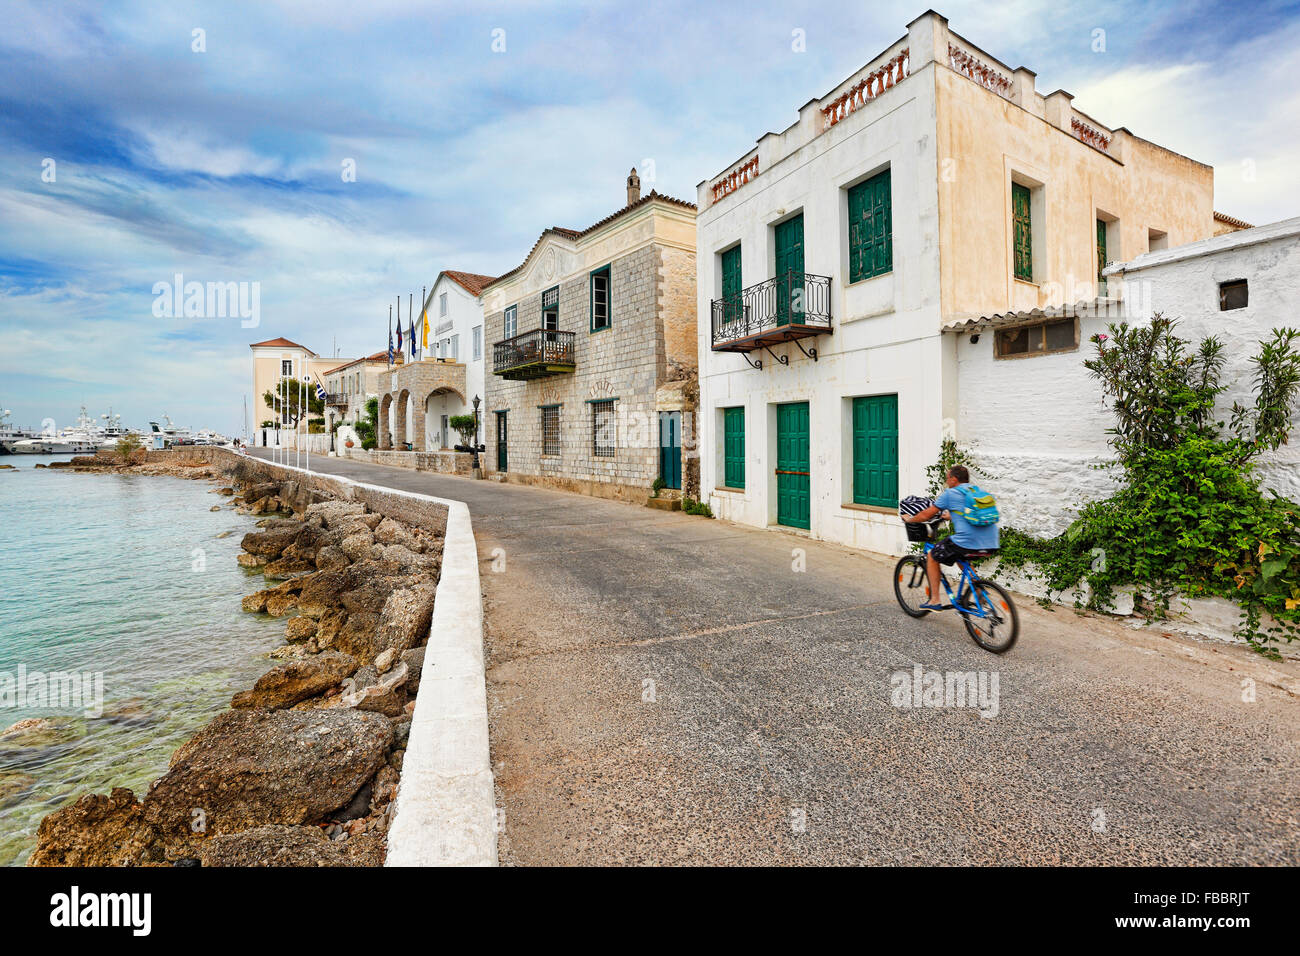 A bicyclist in the town of Spetses island, Greece - Stock Image